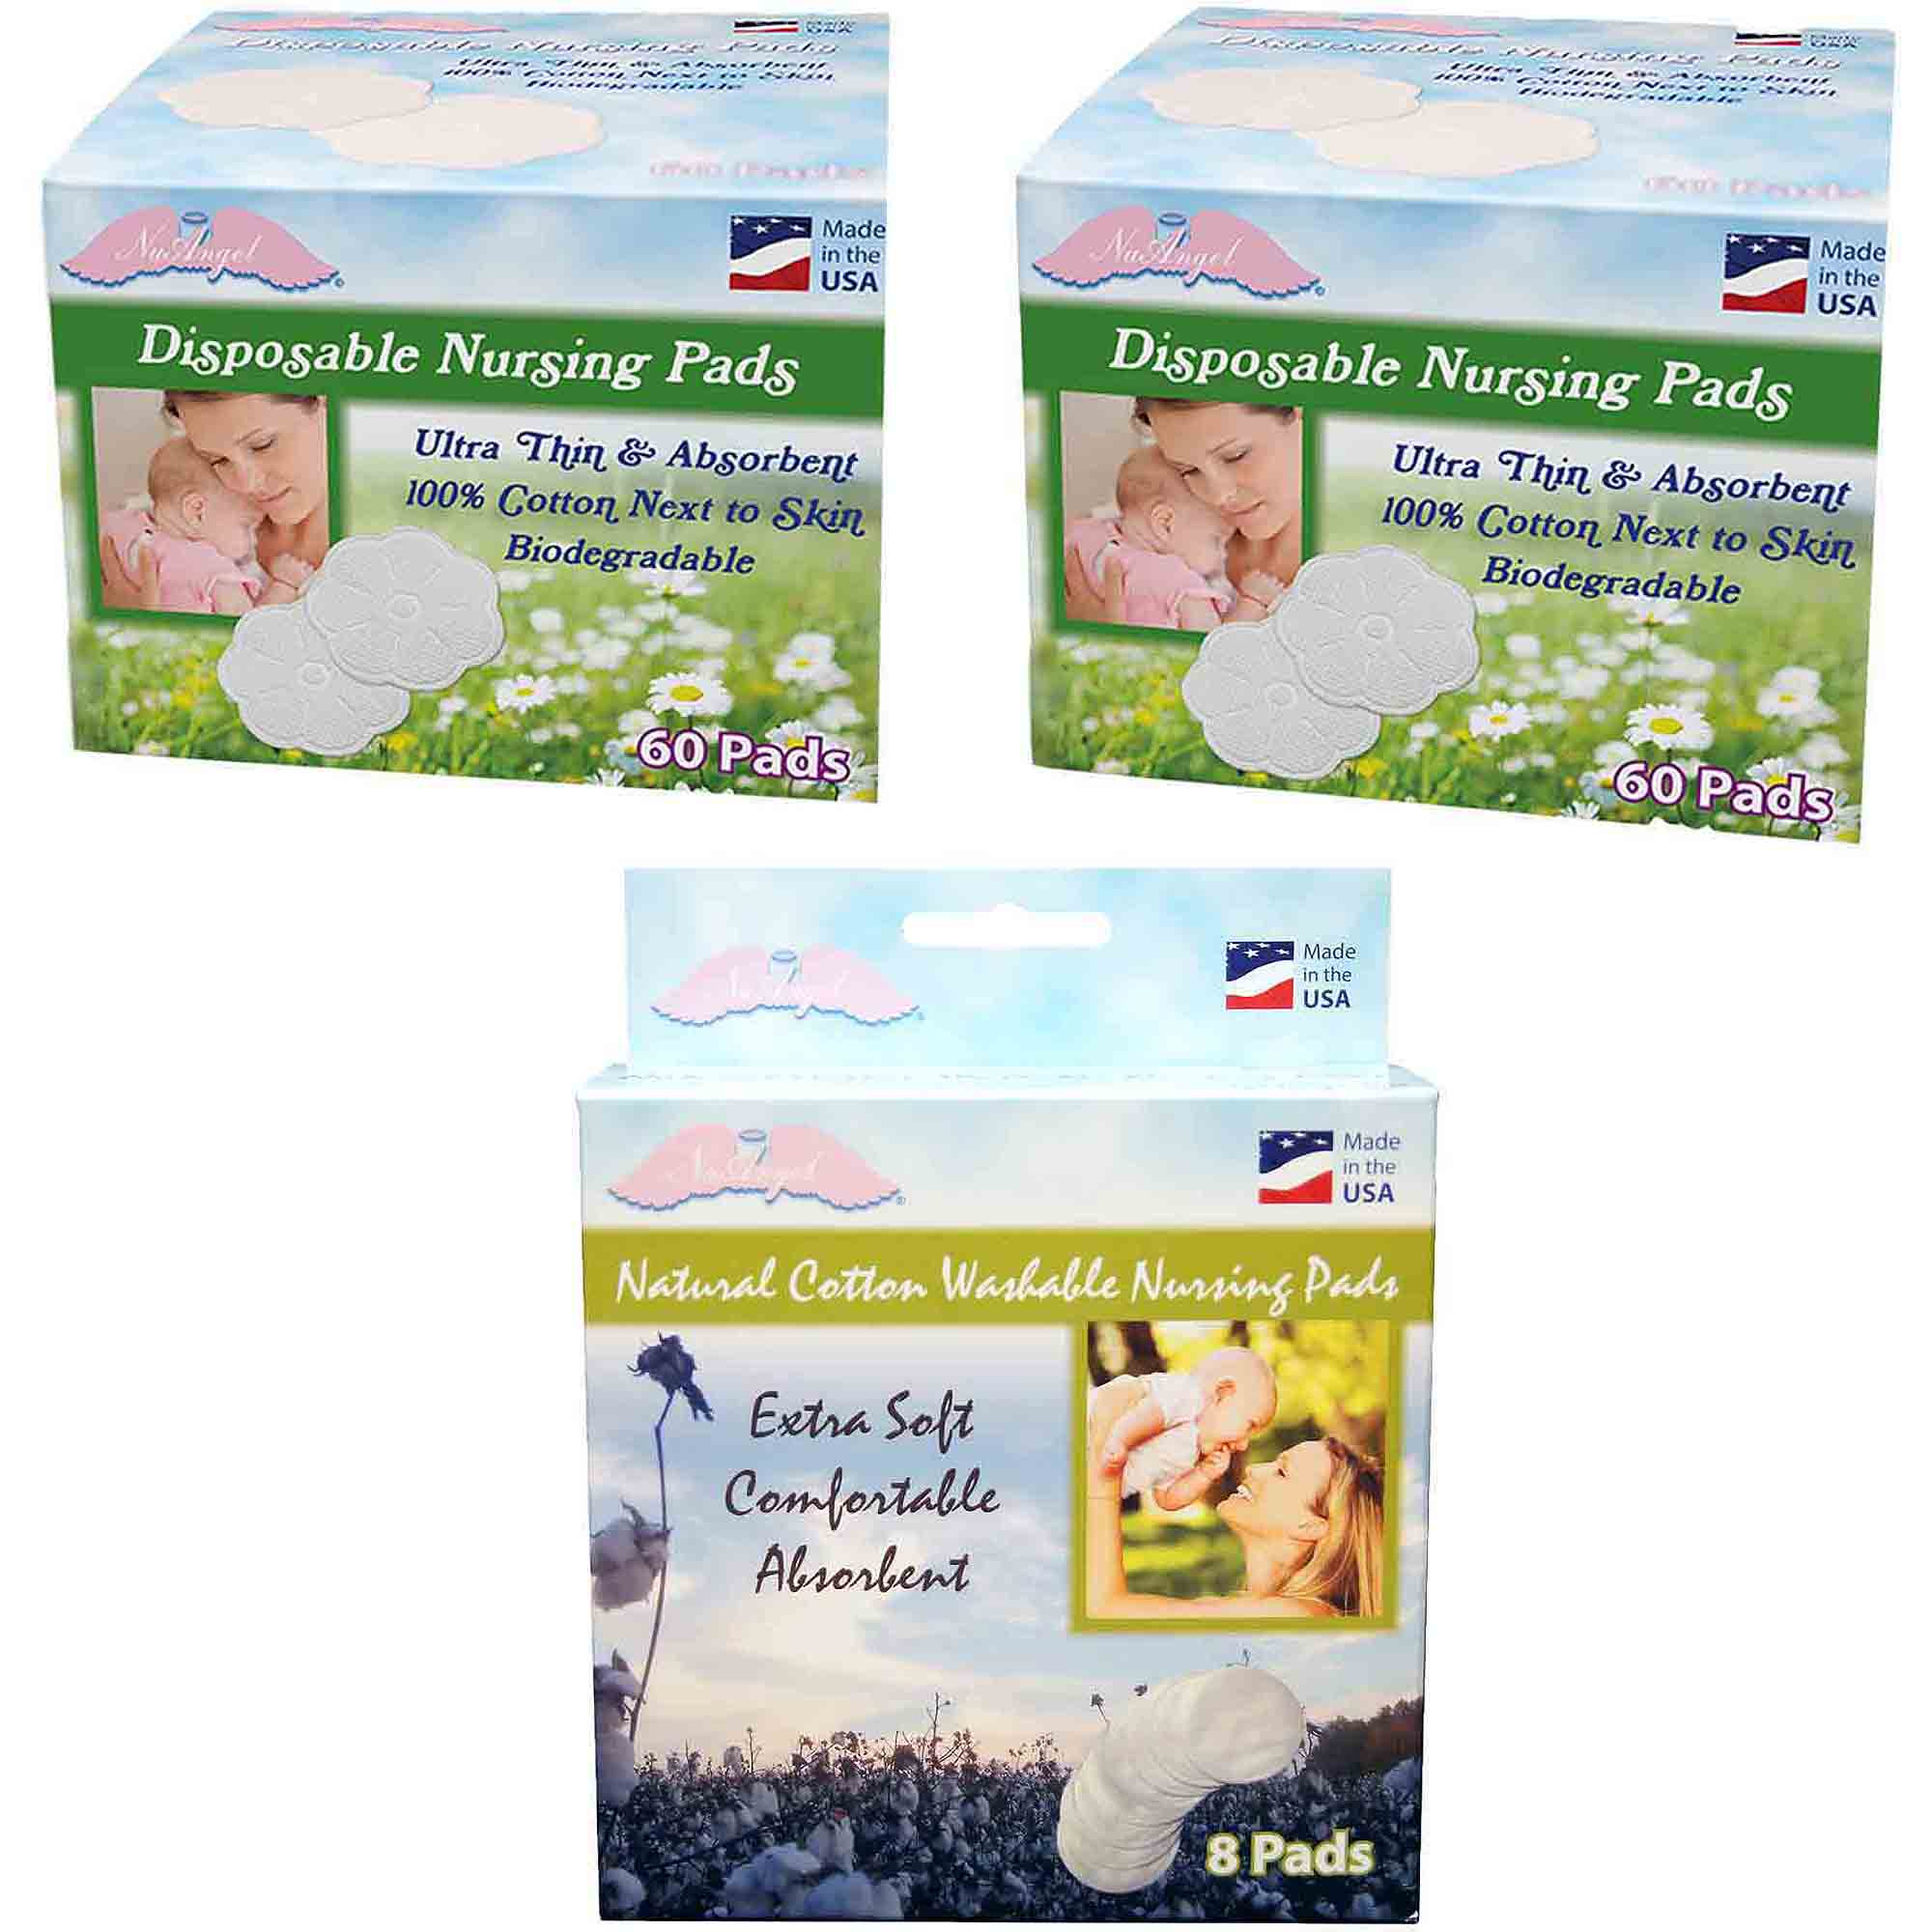 NuAngel All-Natural Washable Cotton & Biodegradable Disposable Cotton Nursing Pad Set, White by NuAngel